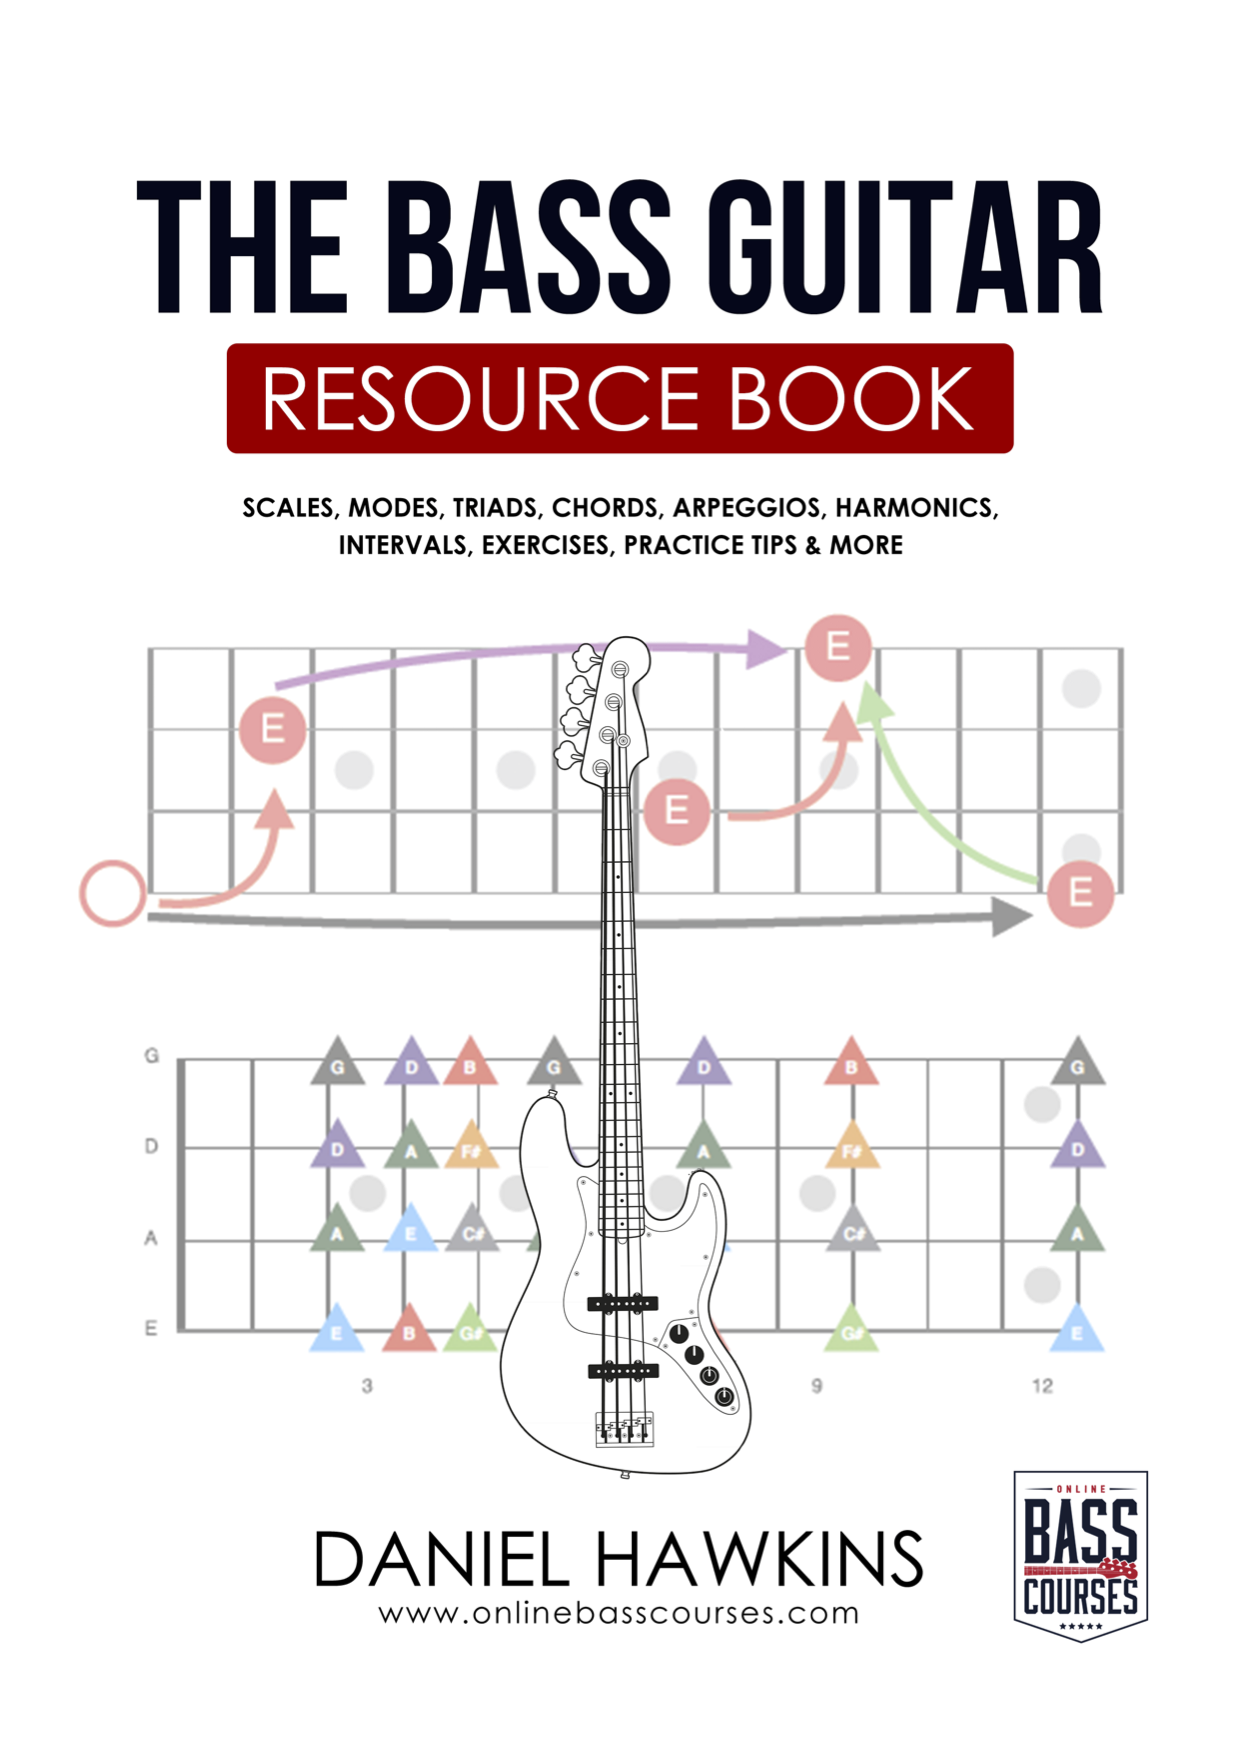 Bass Guitar Resources FREE ebook